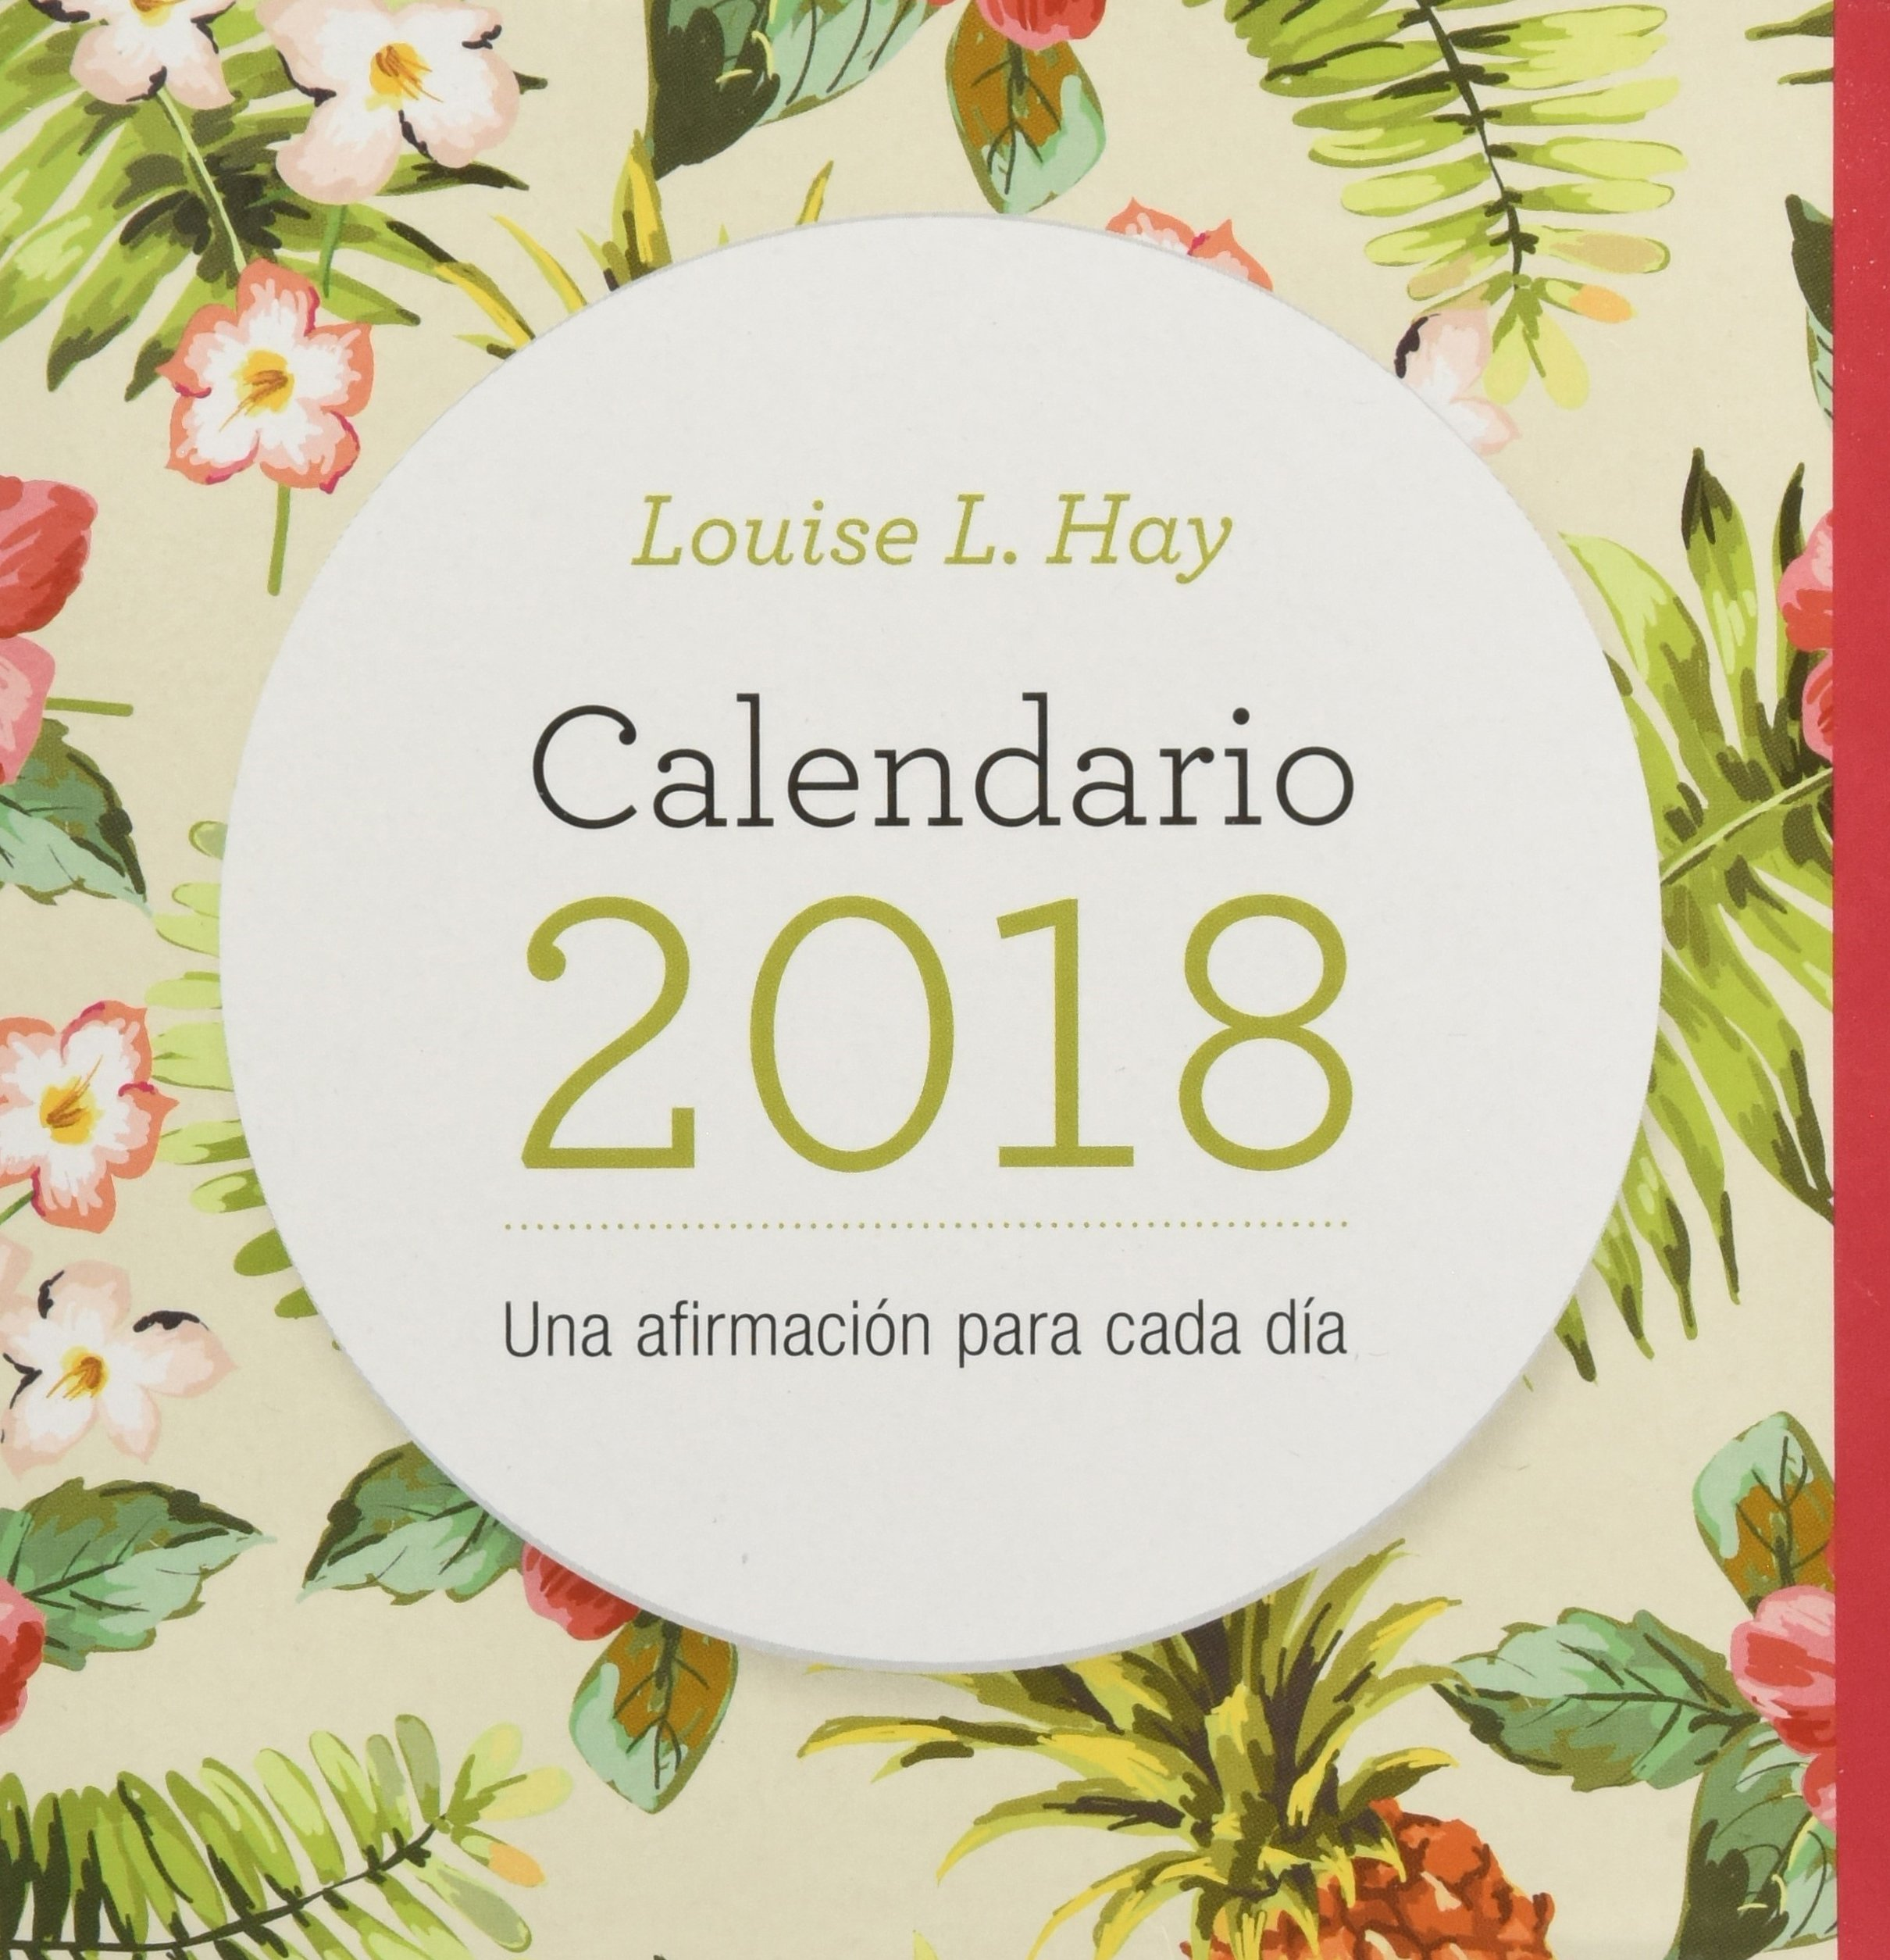 Calendario Louise Hay 2018 (Kepler) Tapa blanda – Day to Day Calendar, 26 jun 2017 8416344108 NON-CLASSIFIABLE SELF-HELP / General Afirmación personal